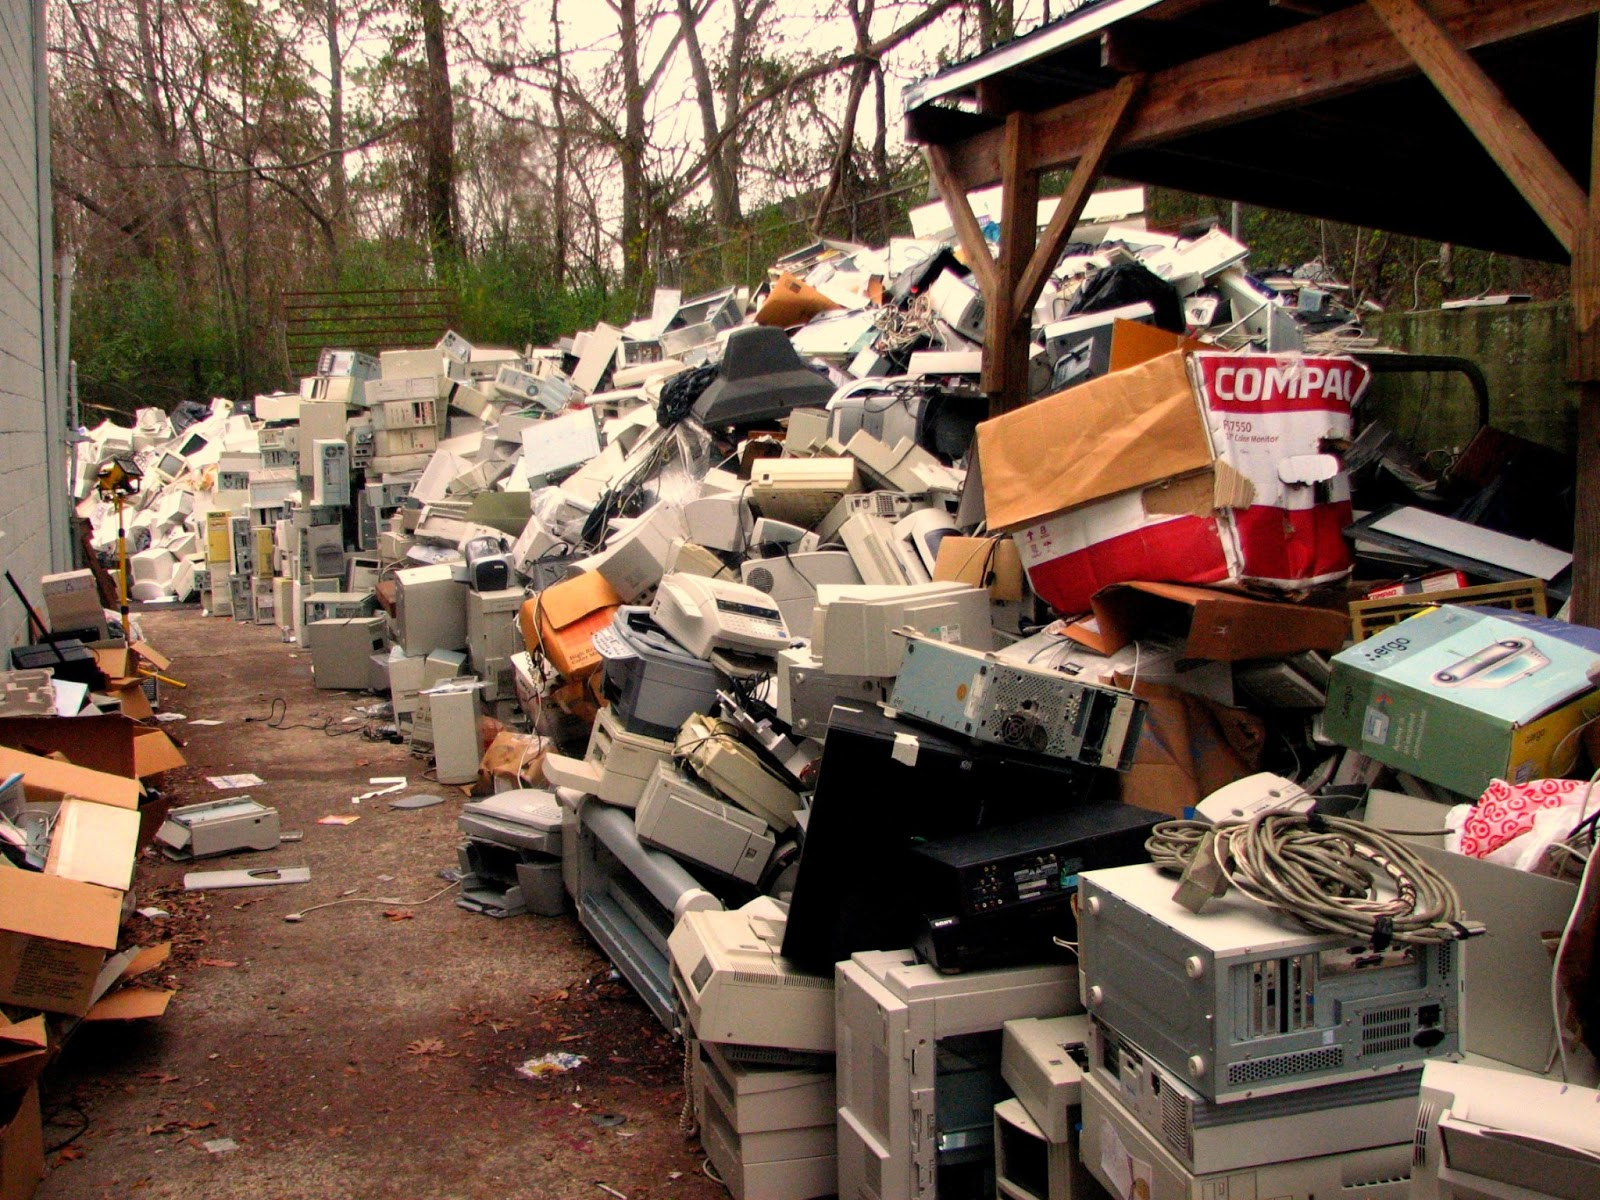 E-Waste, computer waste is a major environmental concern